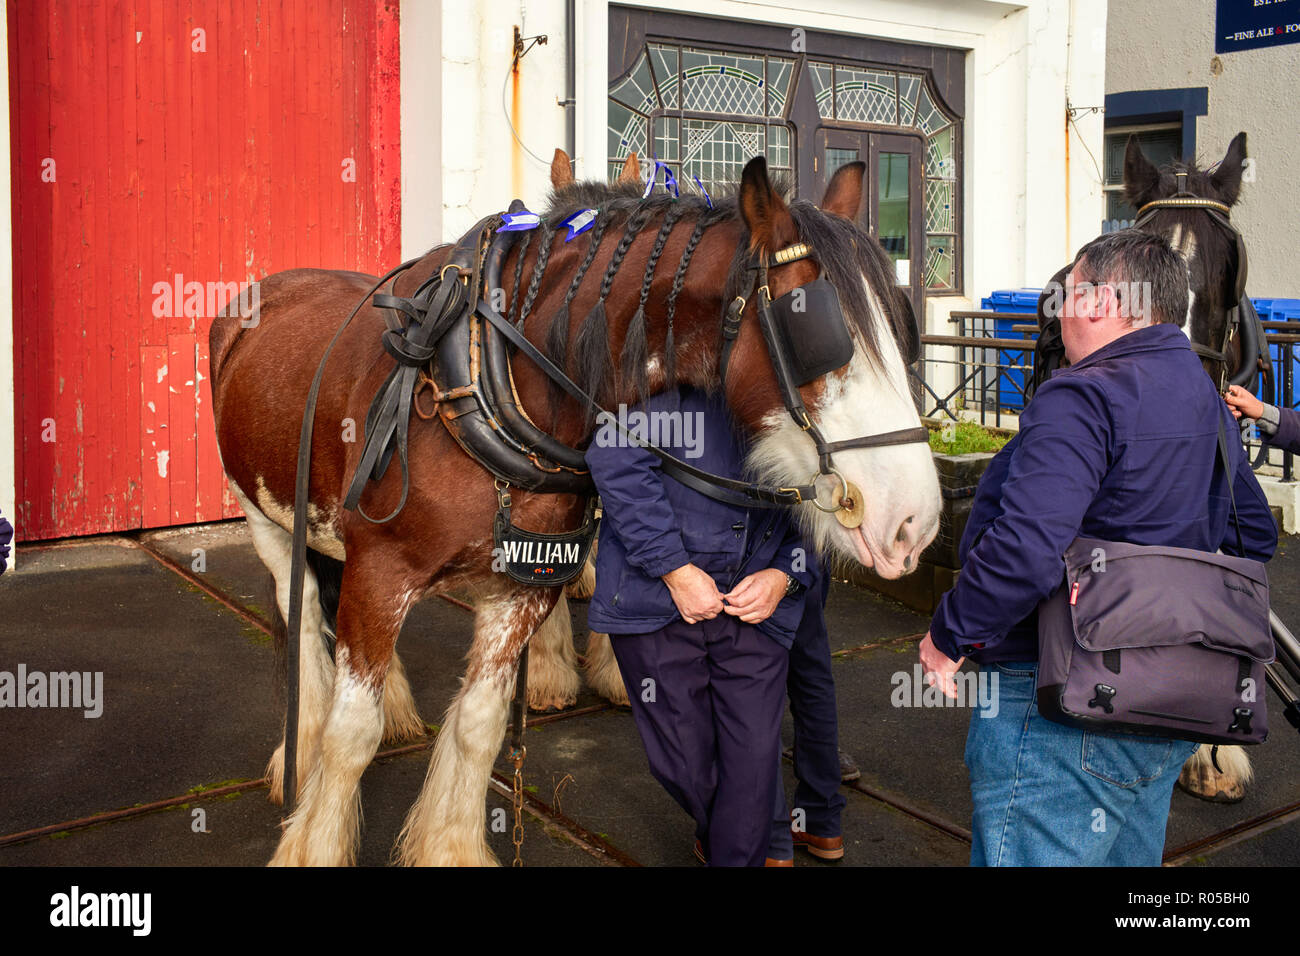 Tram horse William wearing full harness and blinkers leans over his handler in Douglas, Isle of Man - Stock Image